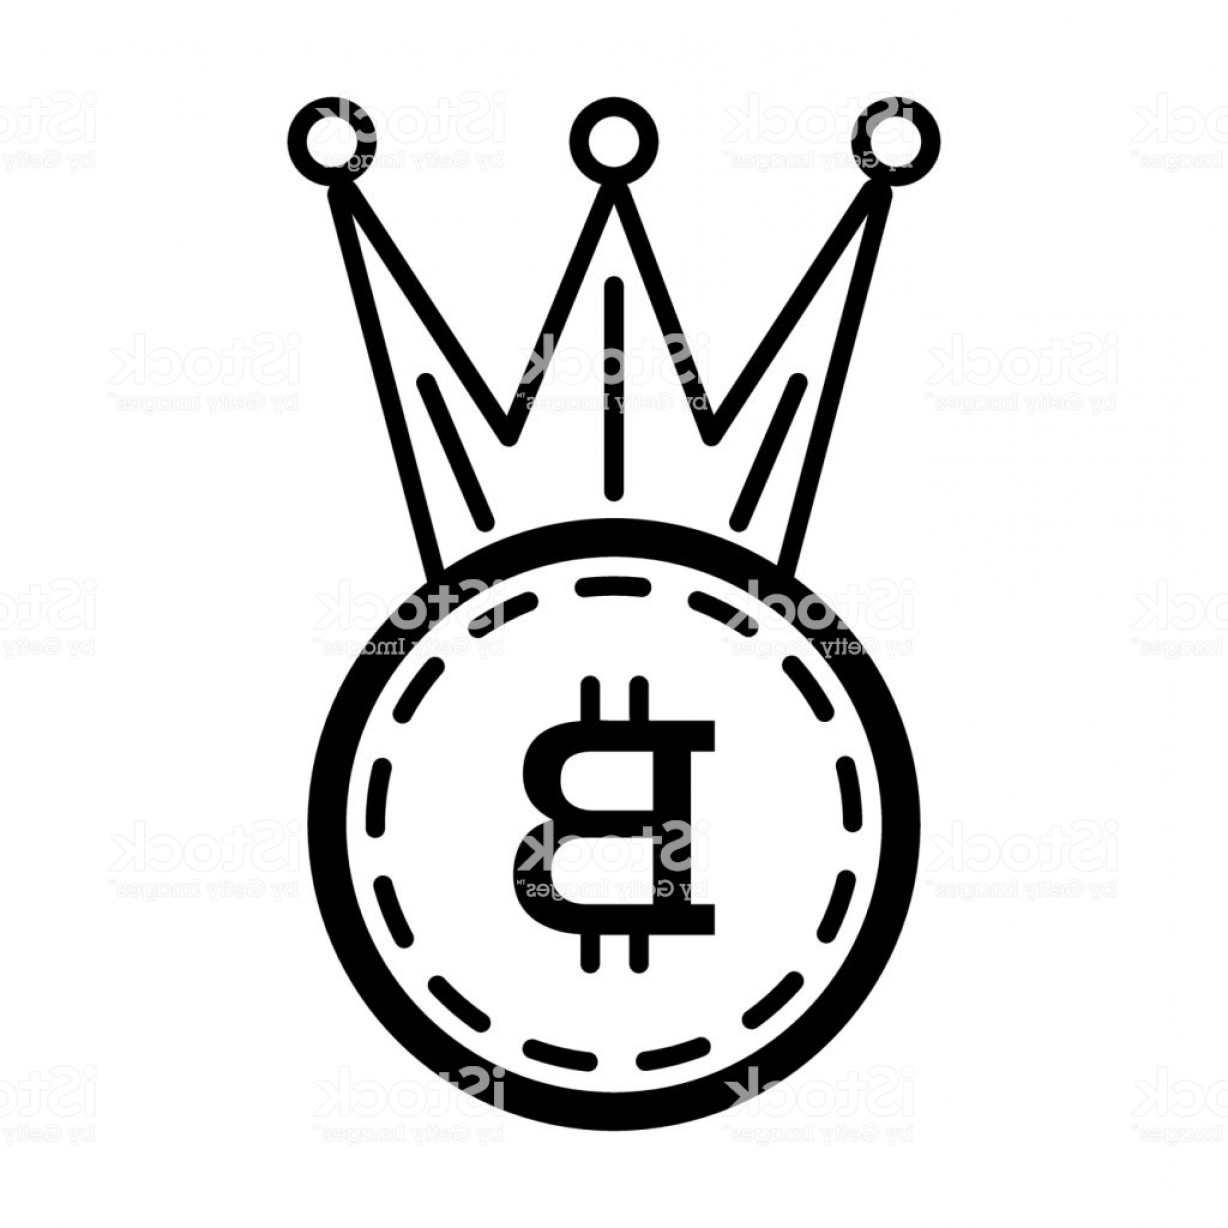 Crown White Outline Vector: Crown Bitcoin Line Icon Vector Illustration Isolated On White Outline Style Design Gm